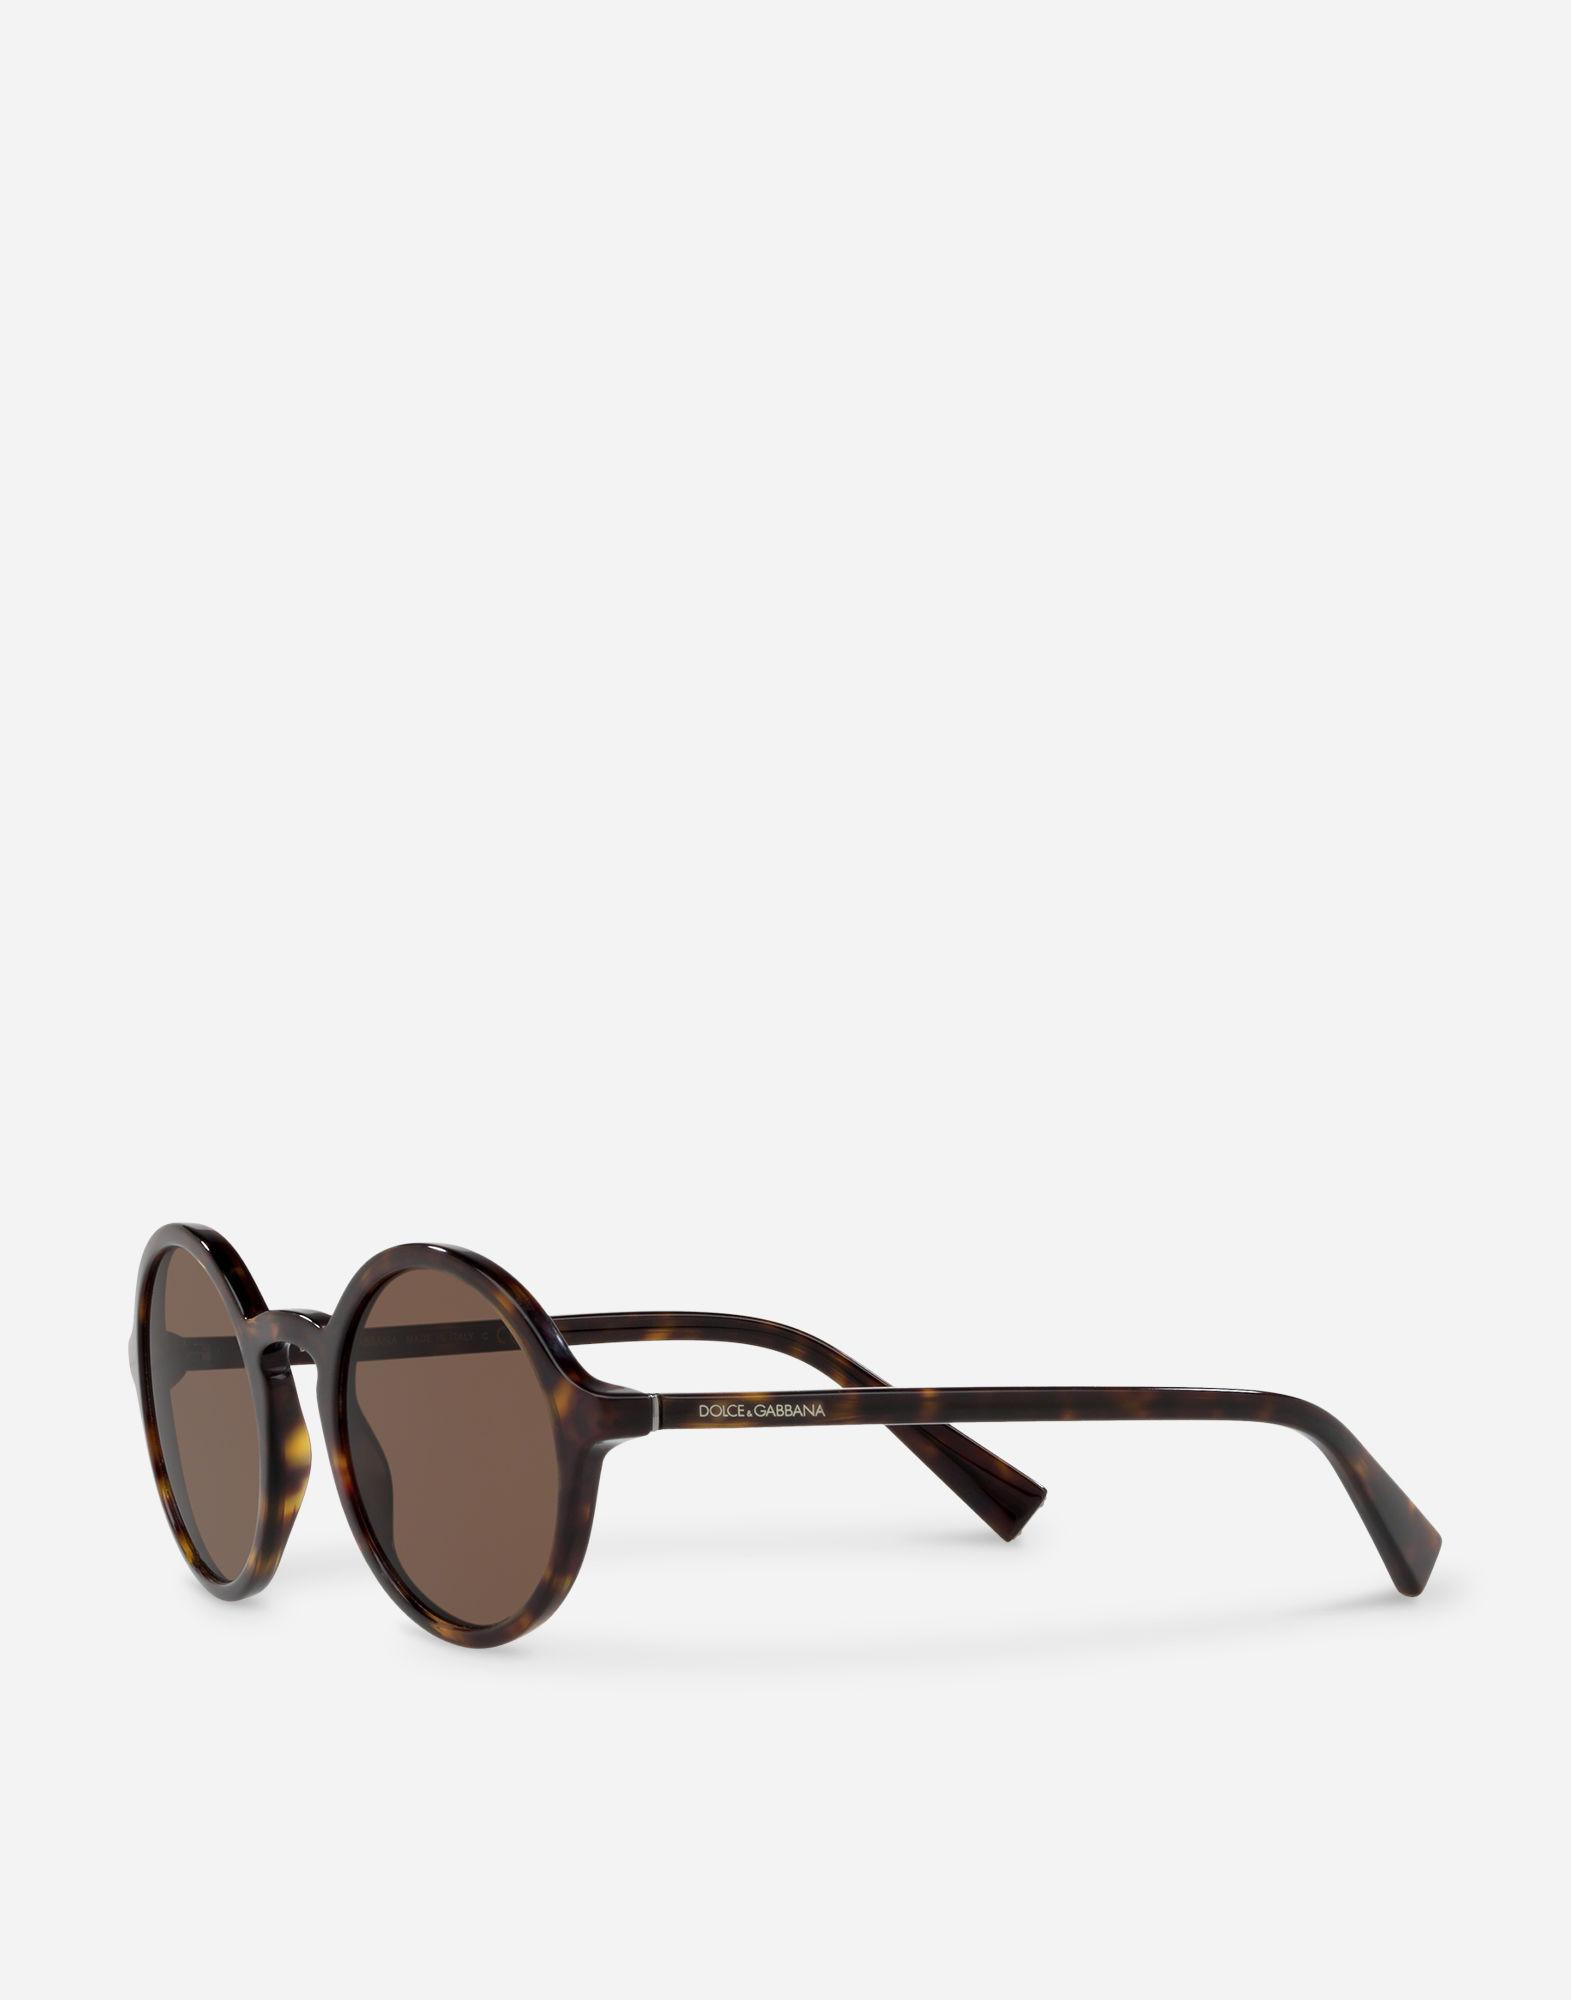 c4817da434e Lyst - Dolce   Gabbana Round Acetate Sunglasses With Keyhole Bridge in Brown